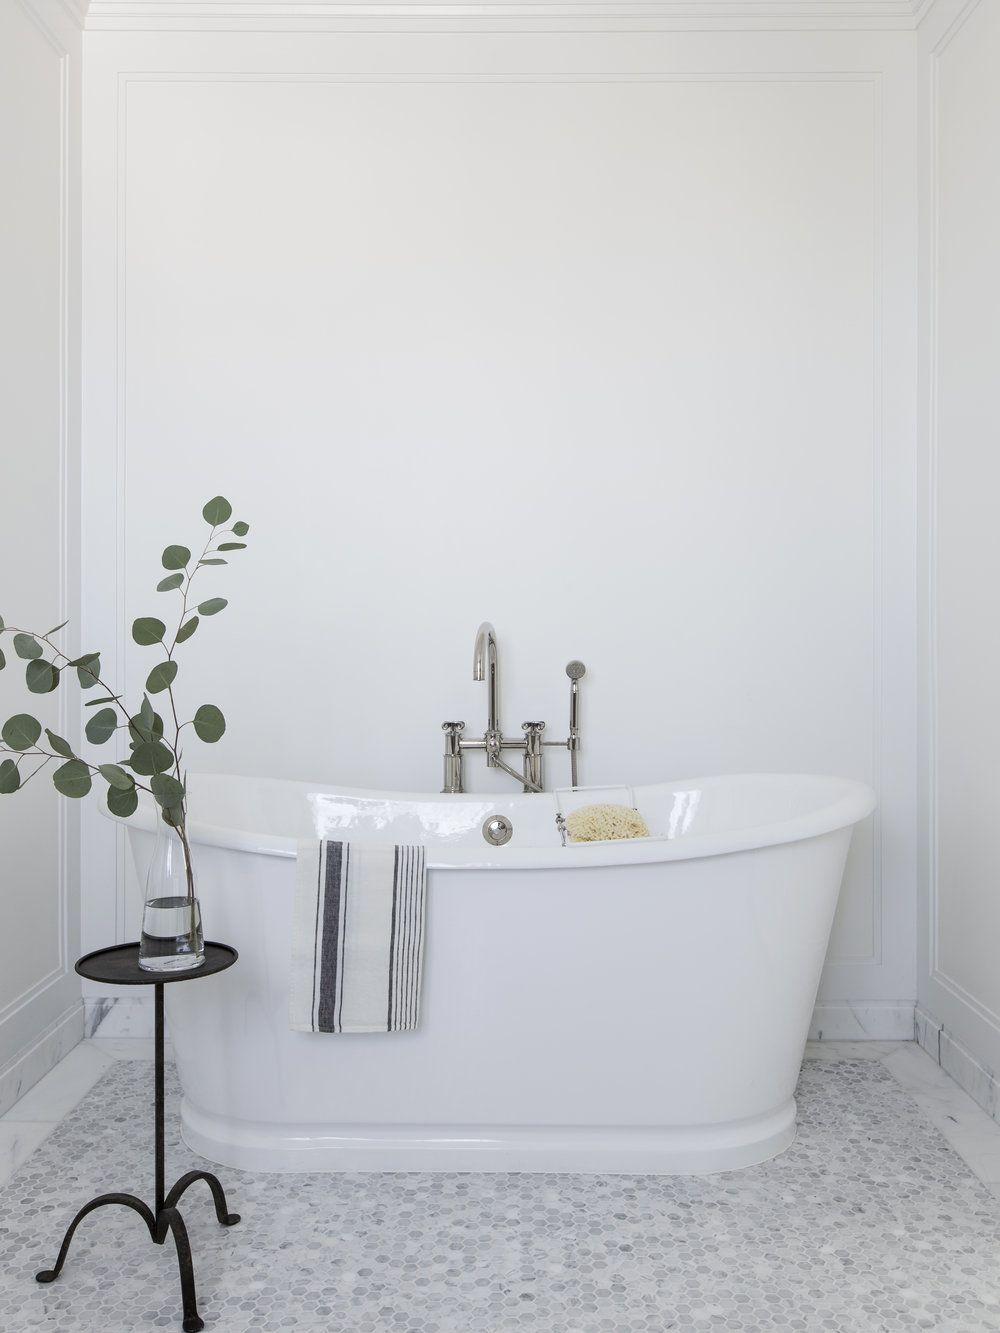 All white bathroom design with stand alone white tub and hex tile ...